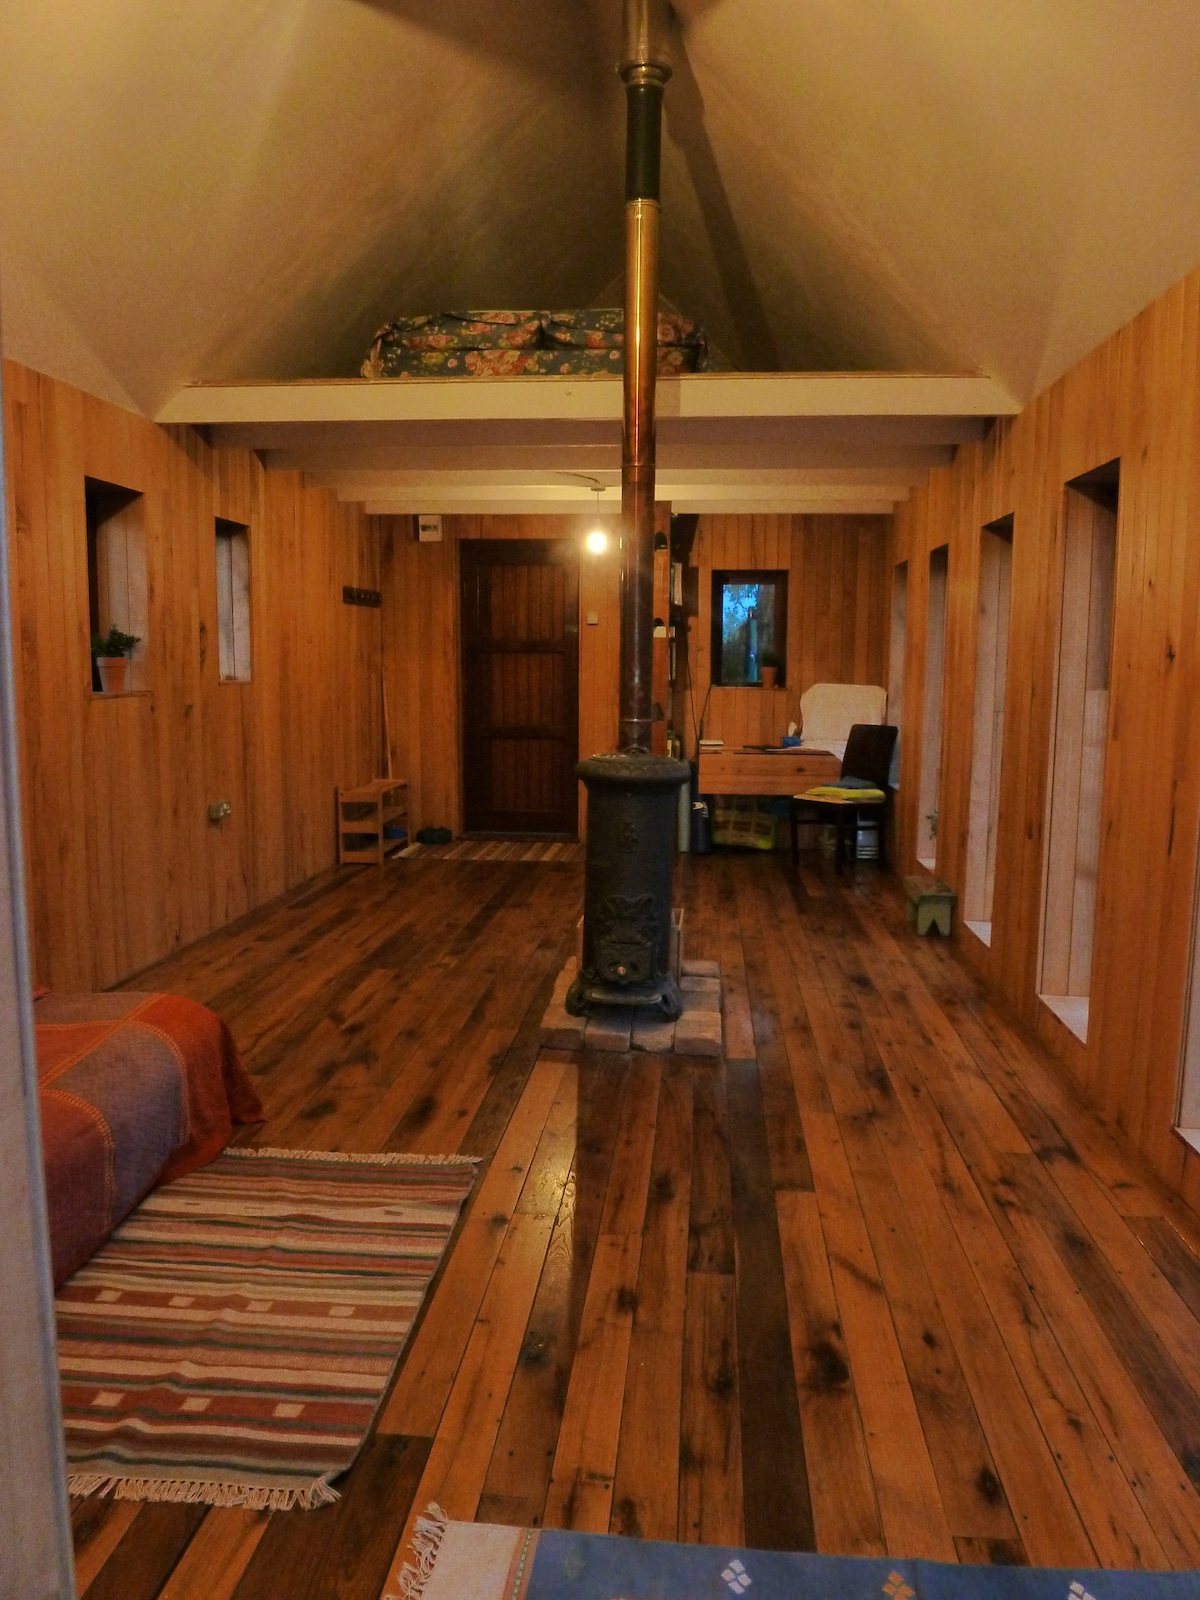 Badgers Hill Chalet, warm and relaxing. Above, the sleeping loft, with a double mattress. Ground floor, futon sofa that open into double bed.